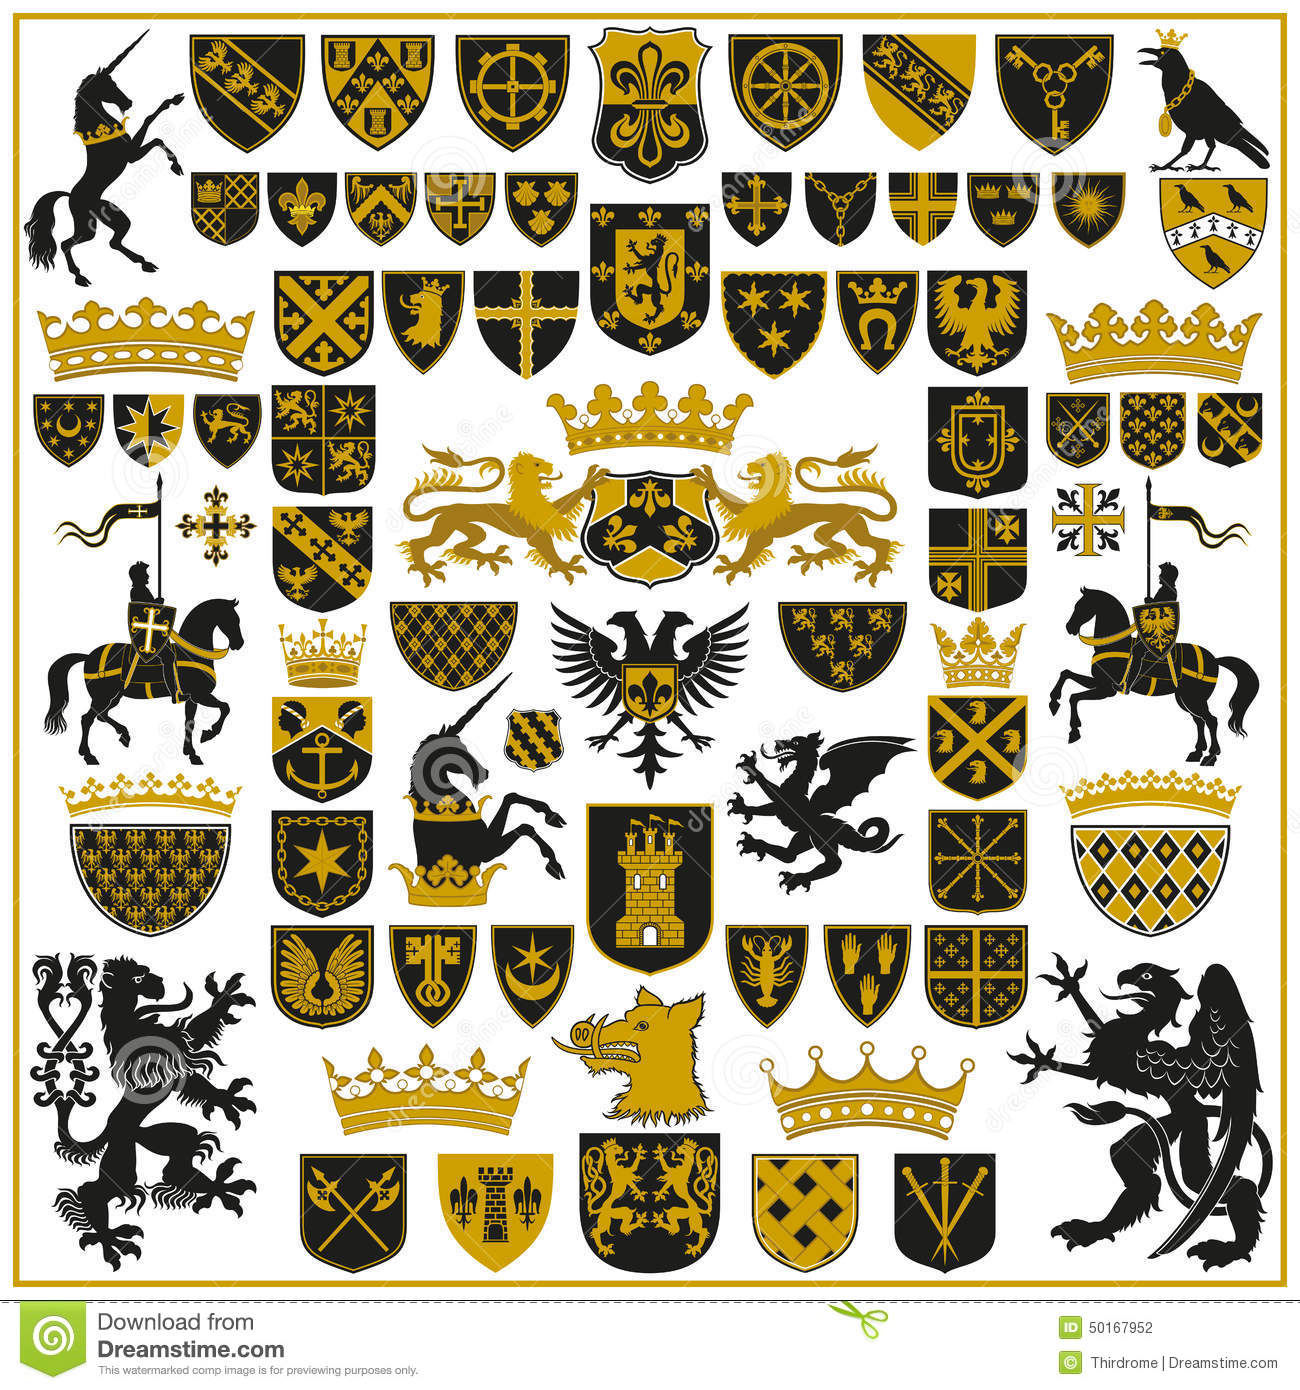 Heraldry Crests And Symbols Stock Vector Illustration Of Crests